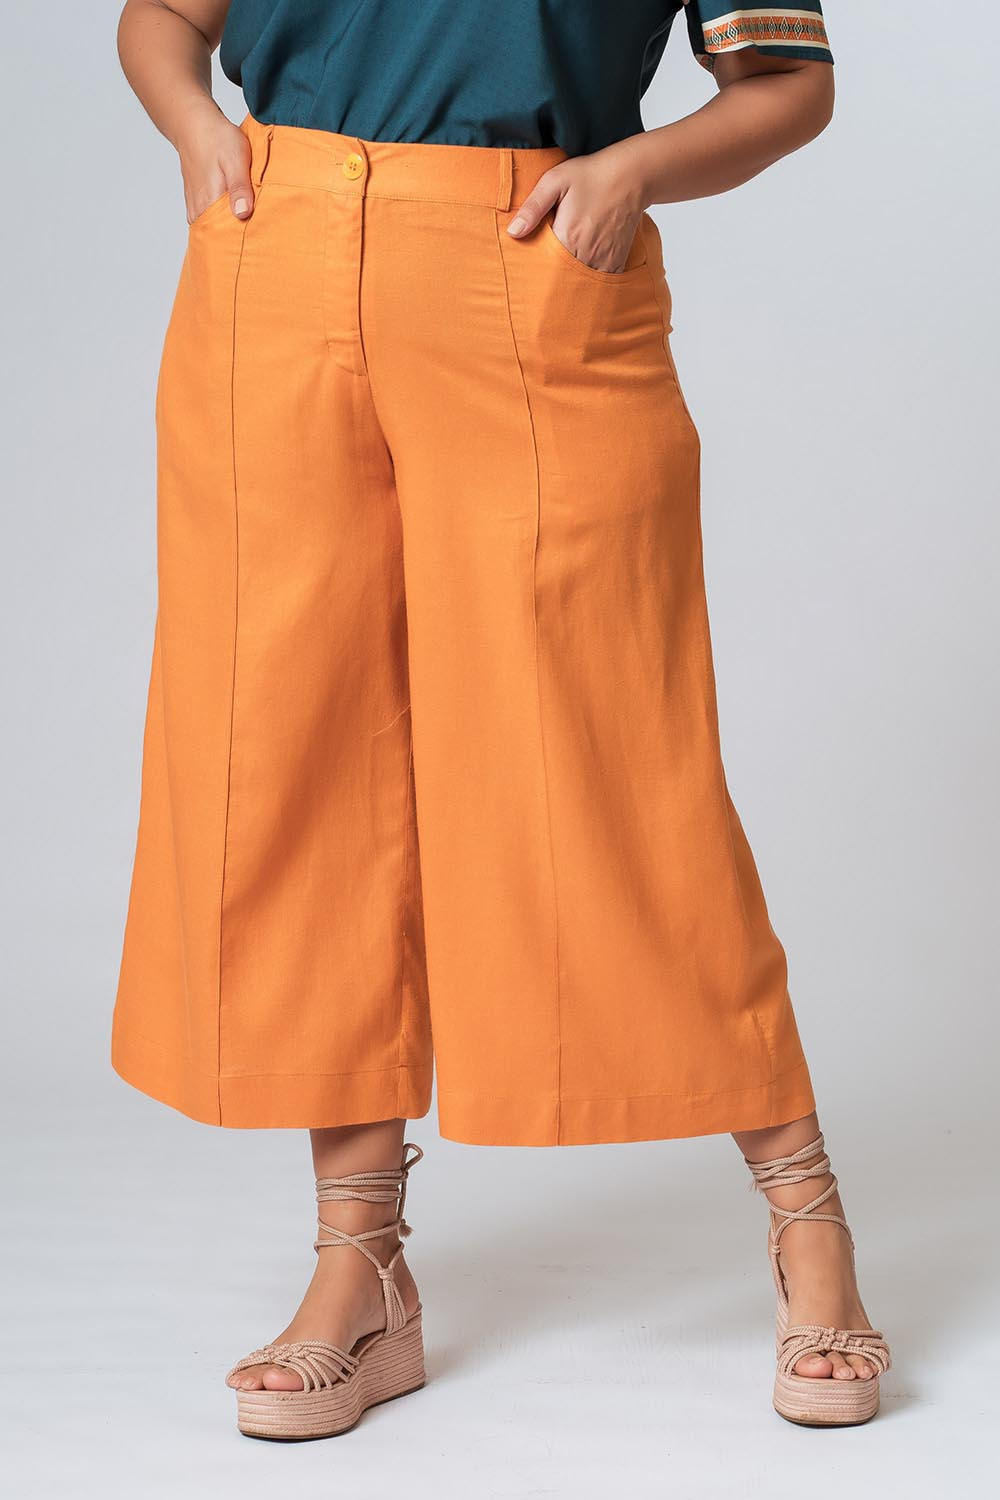 calca_plus_size_cropped_nervura_amarelo_19623_4_20200915112244